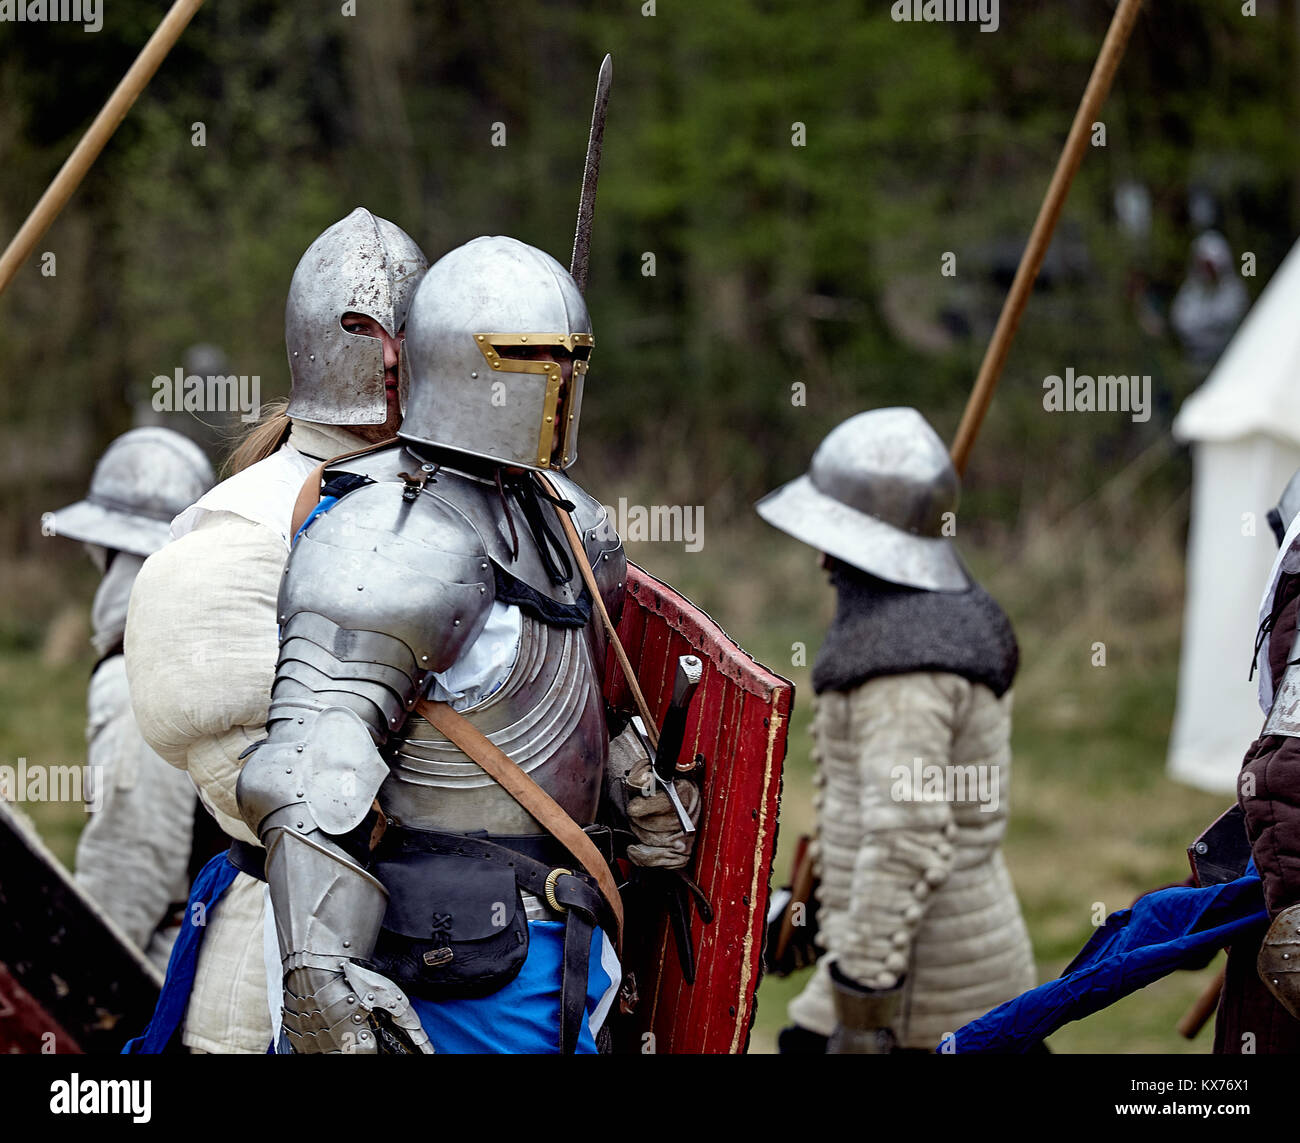 Knight in armor. Medieval battle (historical reconstruction) - Stock Image